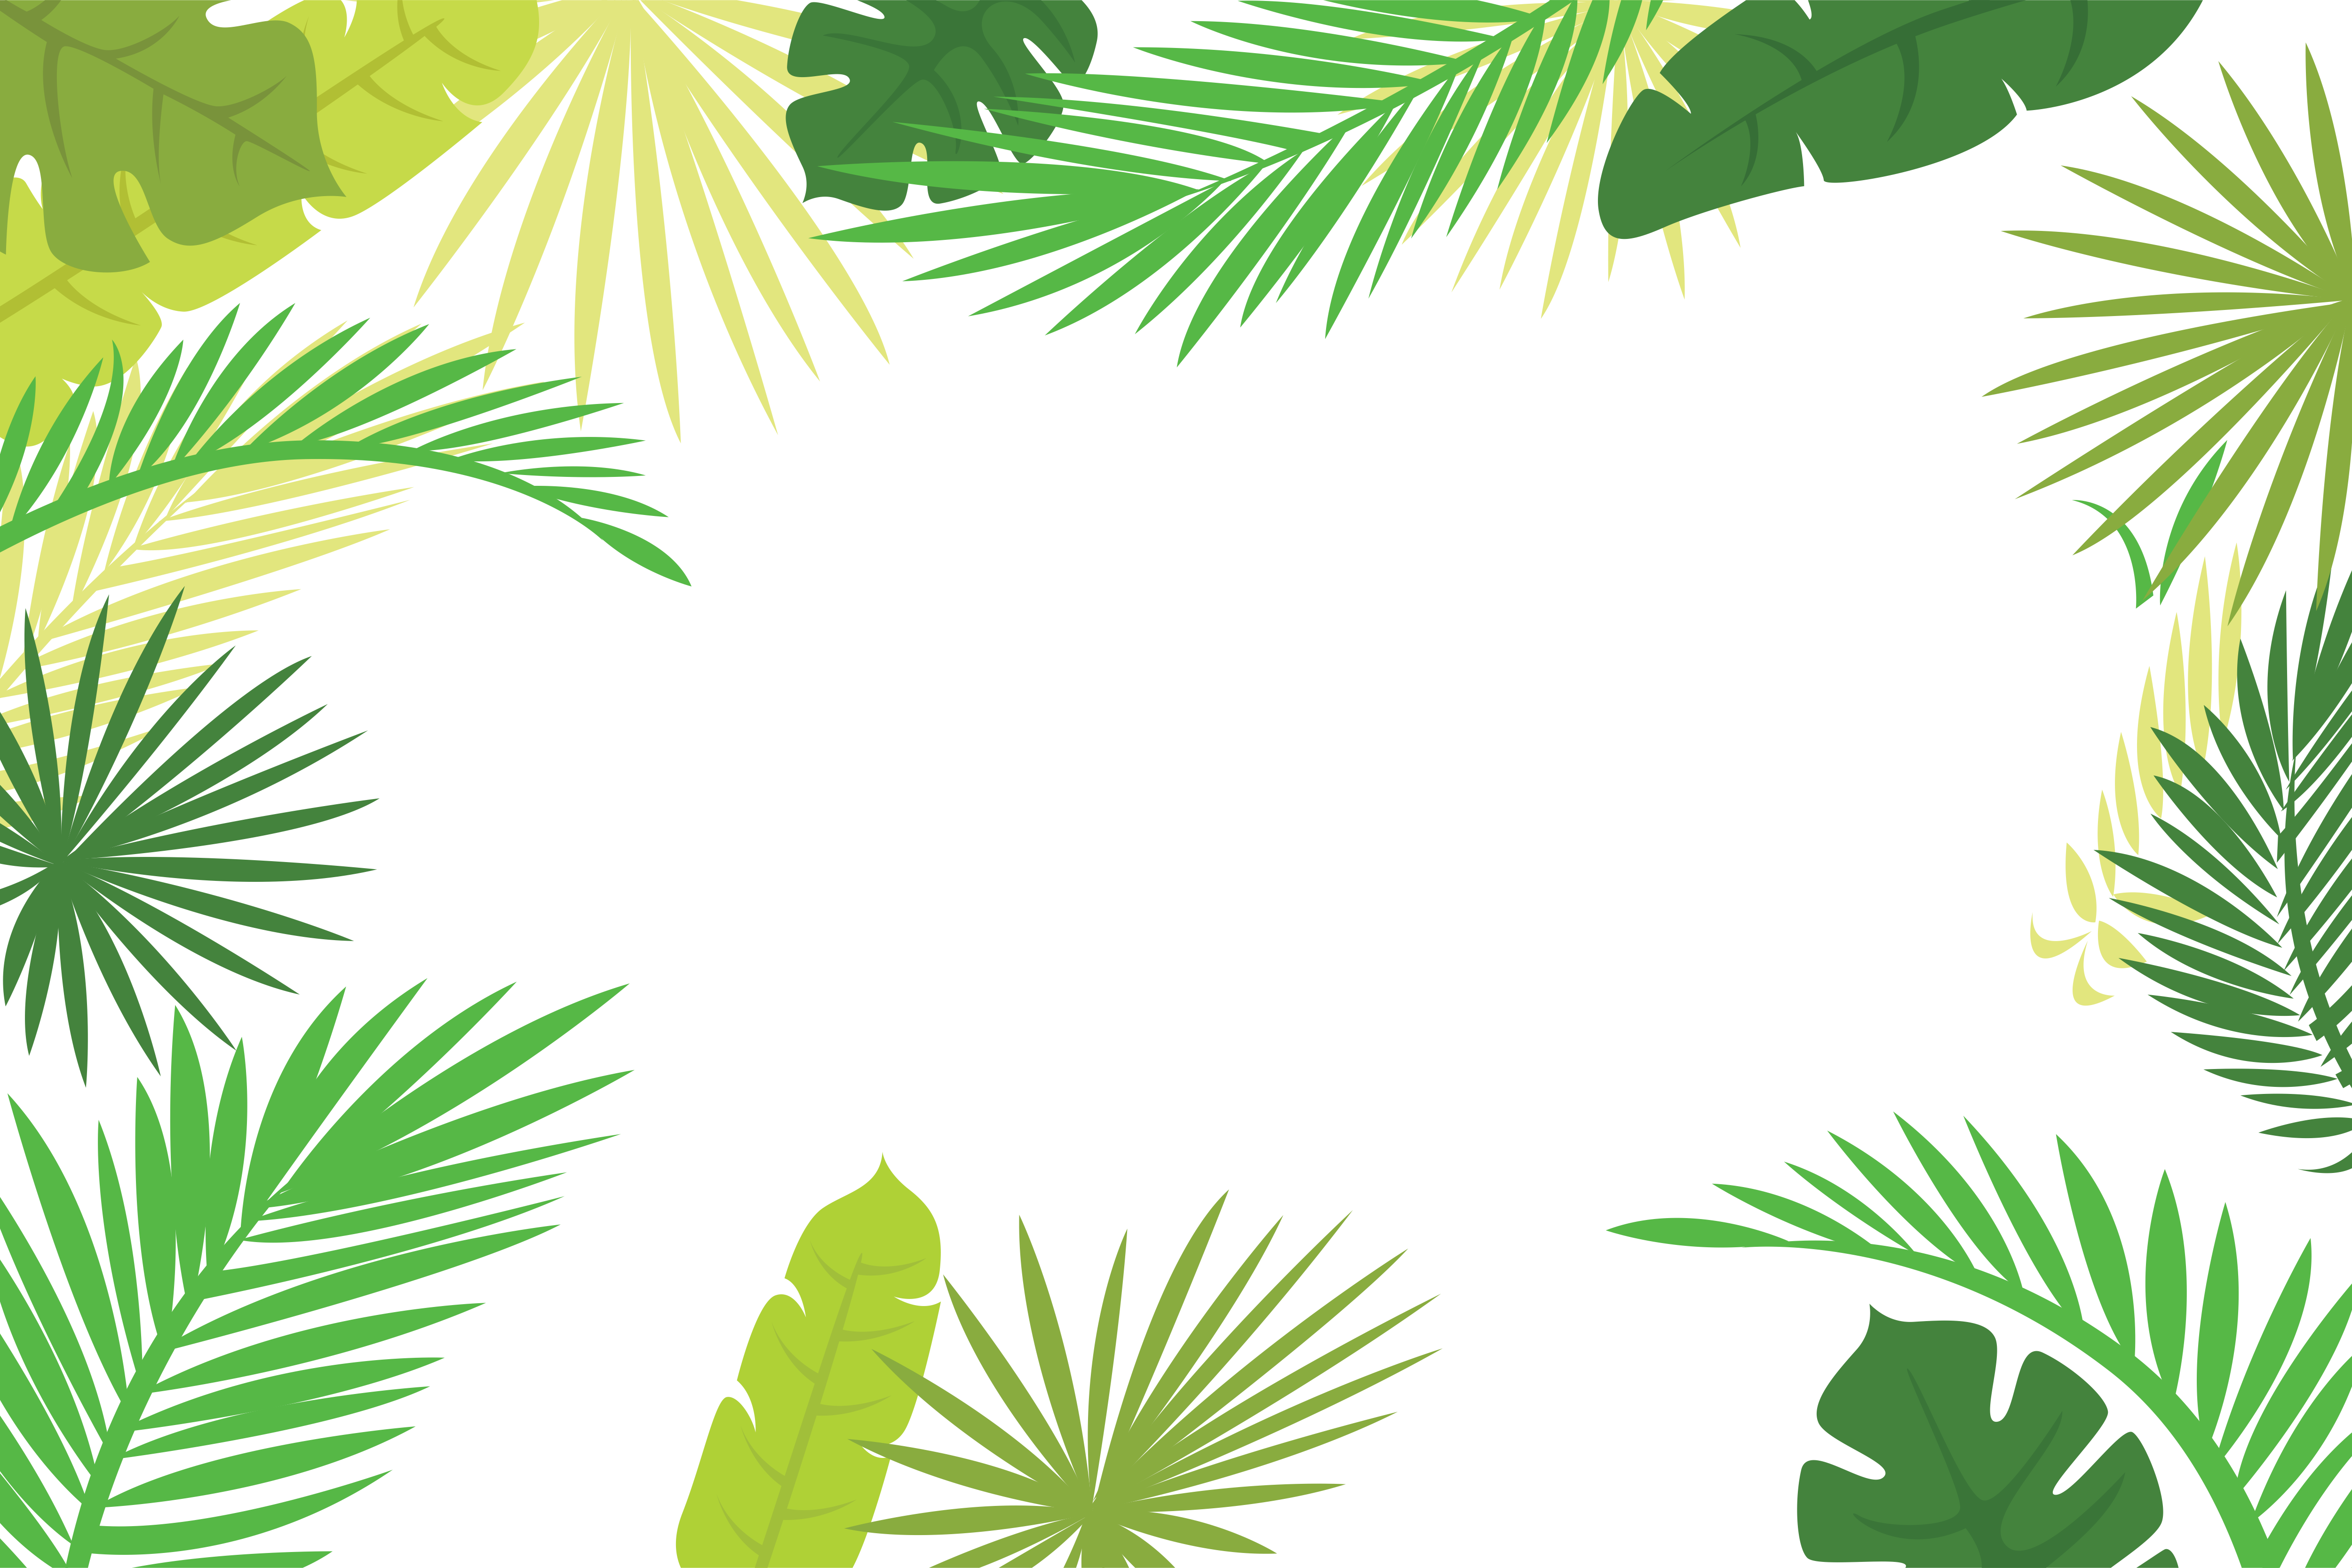 Arecaceae Text Branch Leaf Illustration Tropical Leaves Border Png 5000x3334 Png Clipart Download Tropical leaves png free download number 400209430,image file format is png,image size is 20 m,this image has been released since 12/07/2018.all prf license pictures and materials on this site are authorized by lovepik.com or the copyright owner. clipartmax